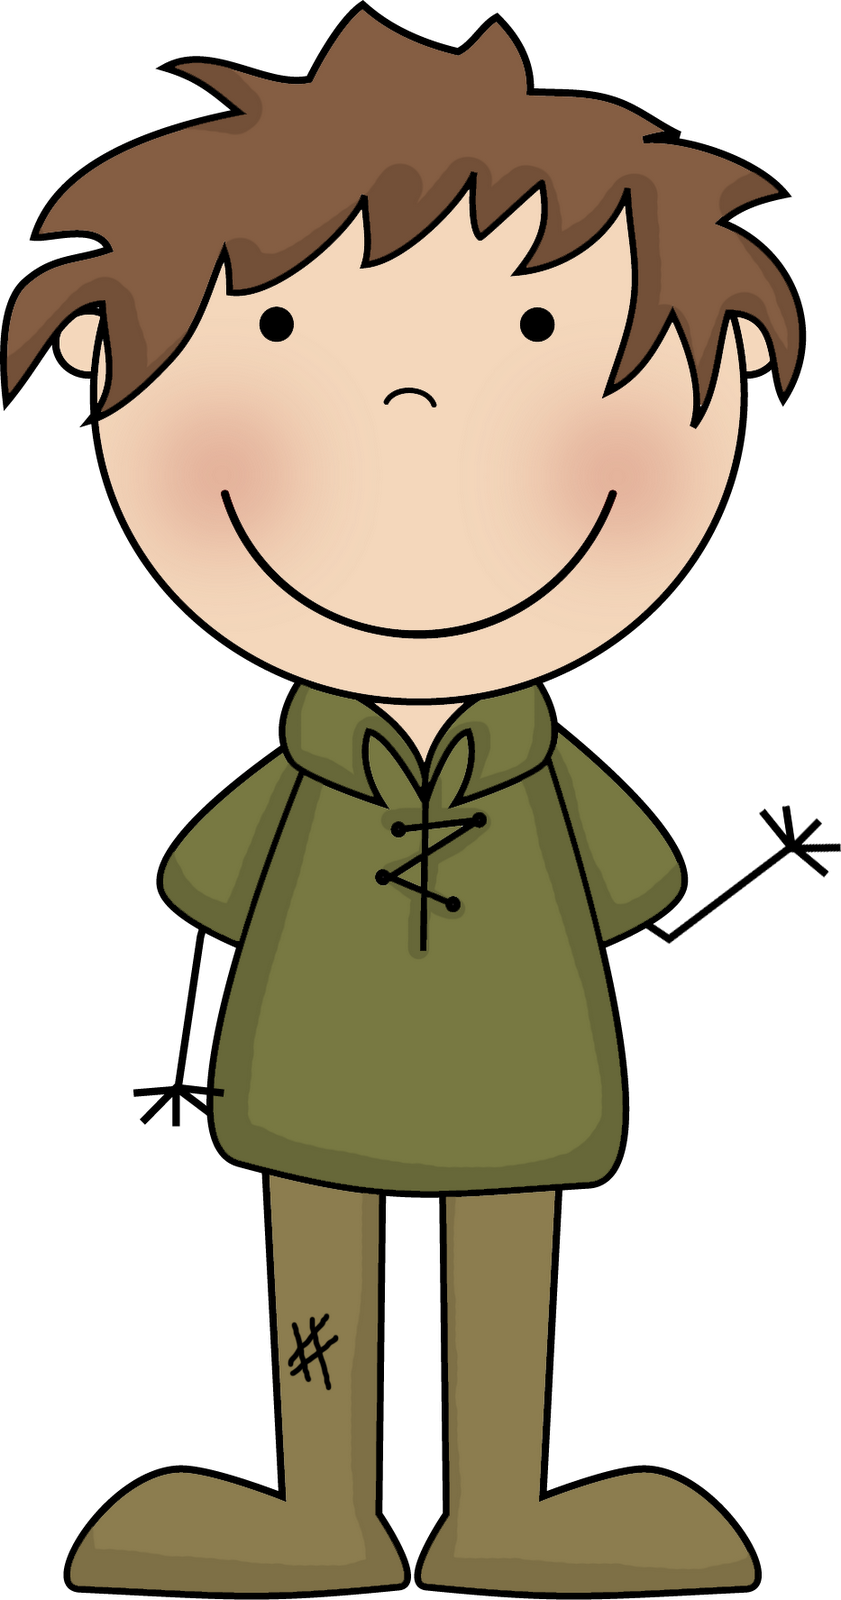 picture royalty free library Jack clipart. Free cliparts download clip.